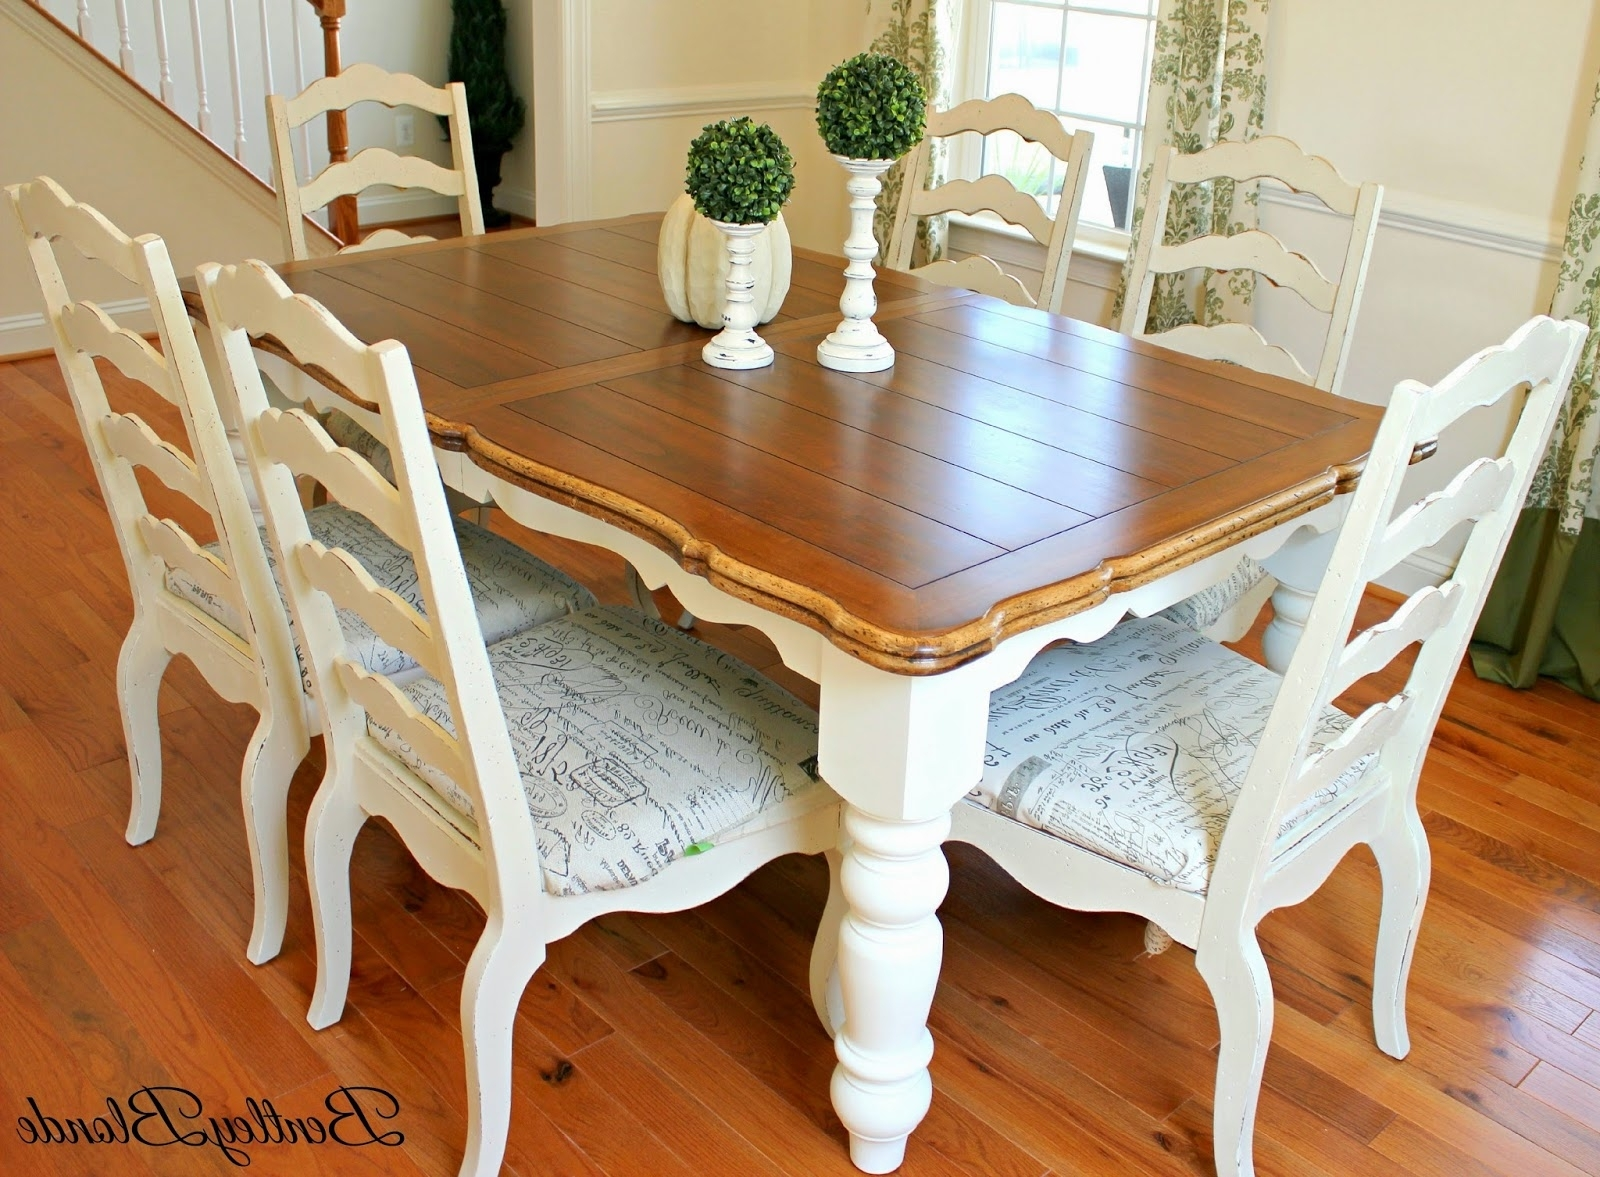 Ivory Painted Dining Tables Within 2017 Ivory Painted Kitchen Table And Chairs Img Edit Plus Pink (View 8 of 25)